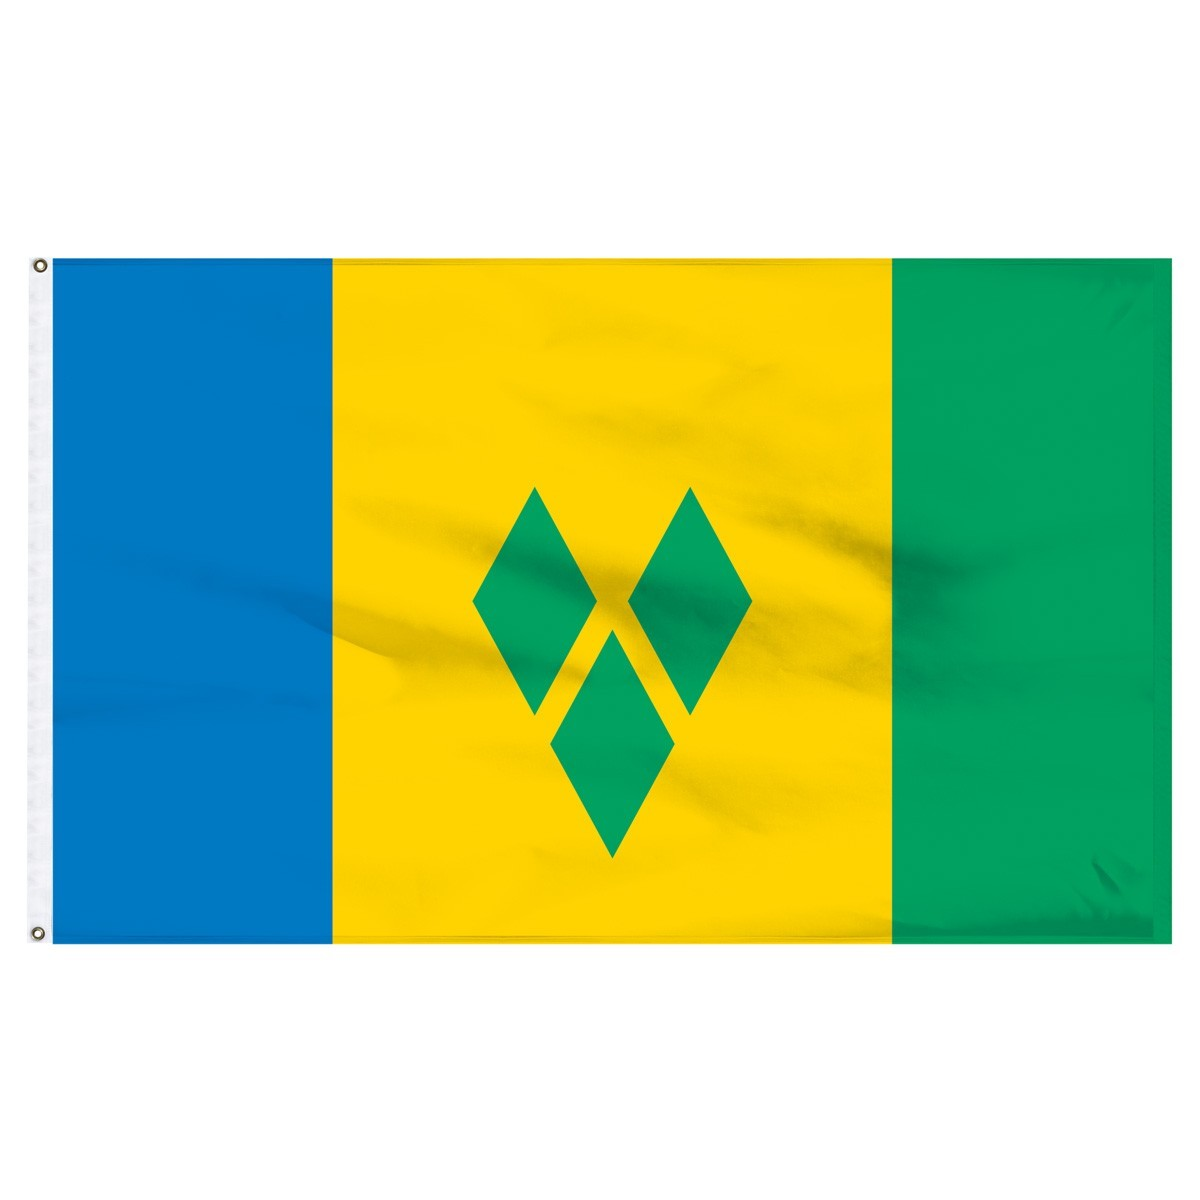 Saint Vincent & Grenadines 4' x 6' Outdoor Nylon Flag